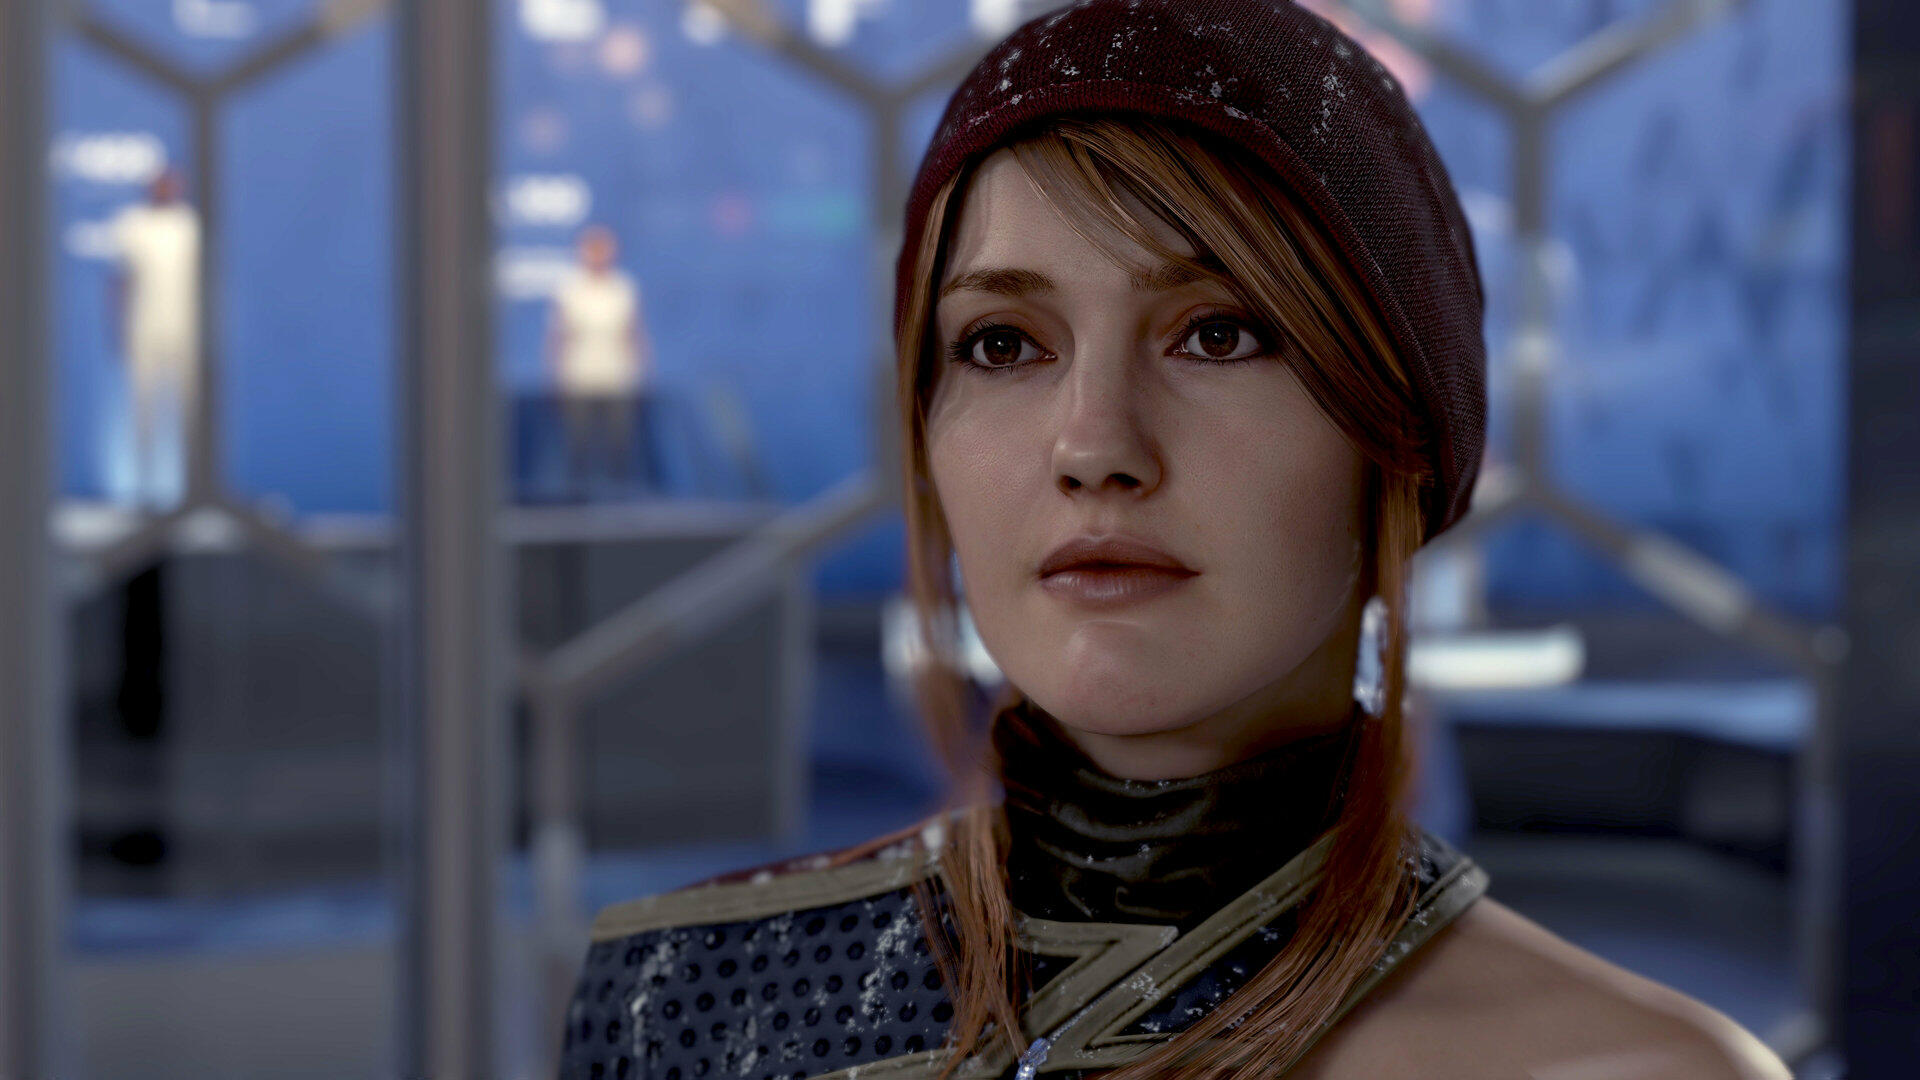 Quantic Dream Condemned by French Court for Failing to Meet Security Obligation